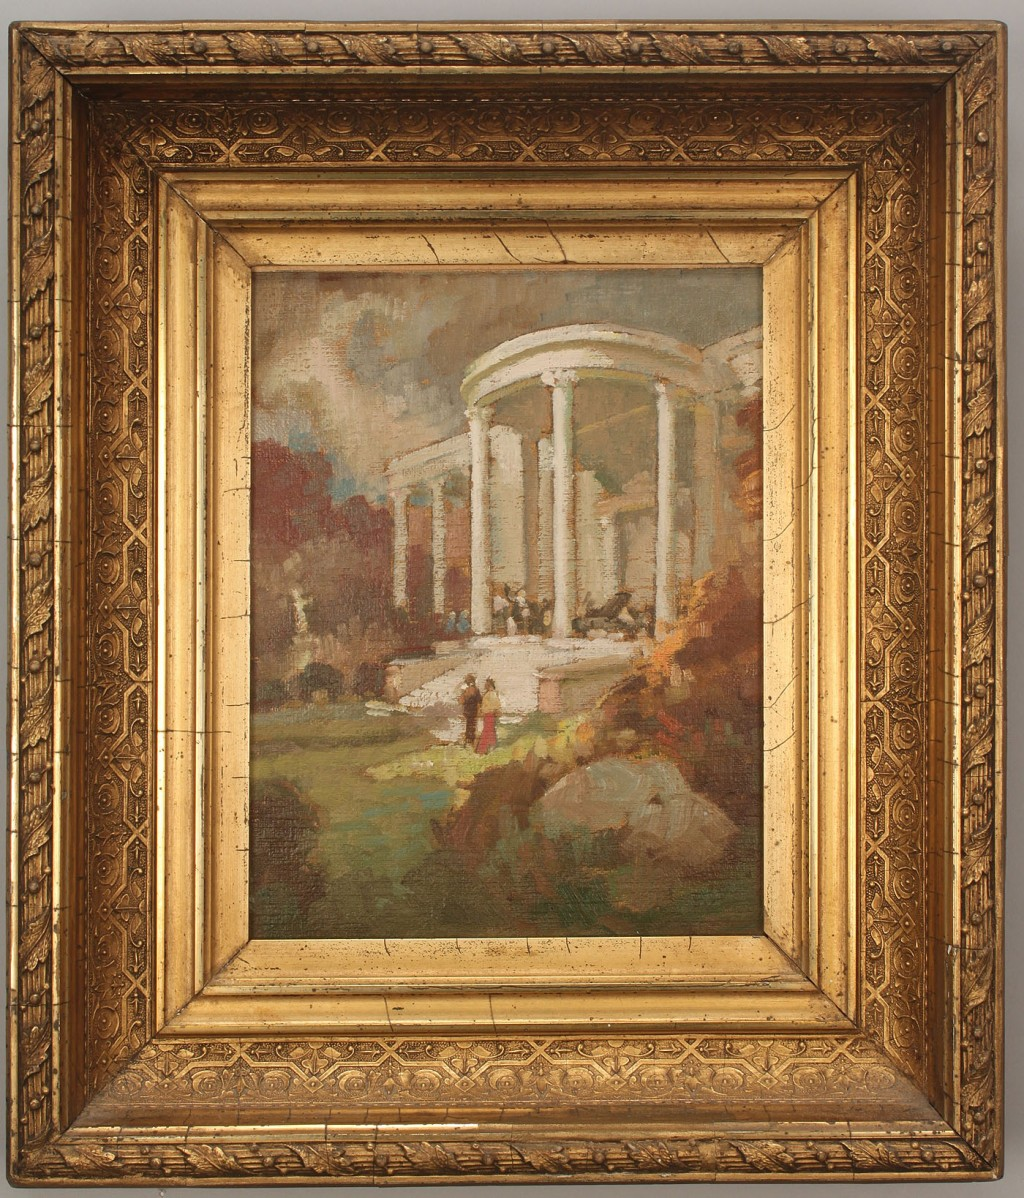 Lot 437: Framed impressionist painting of a house